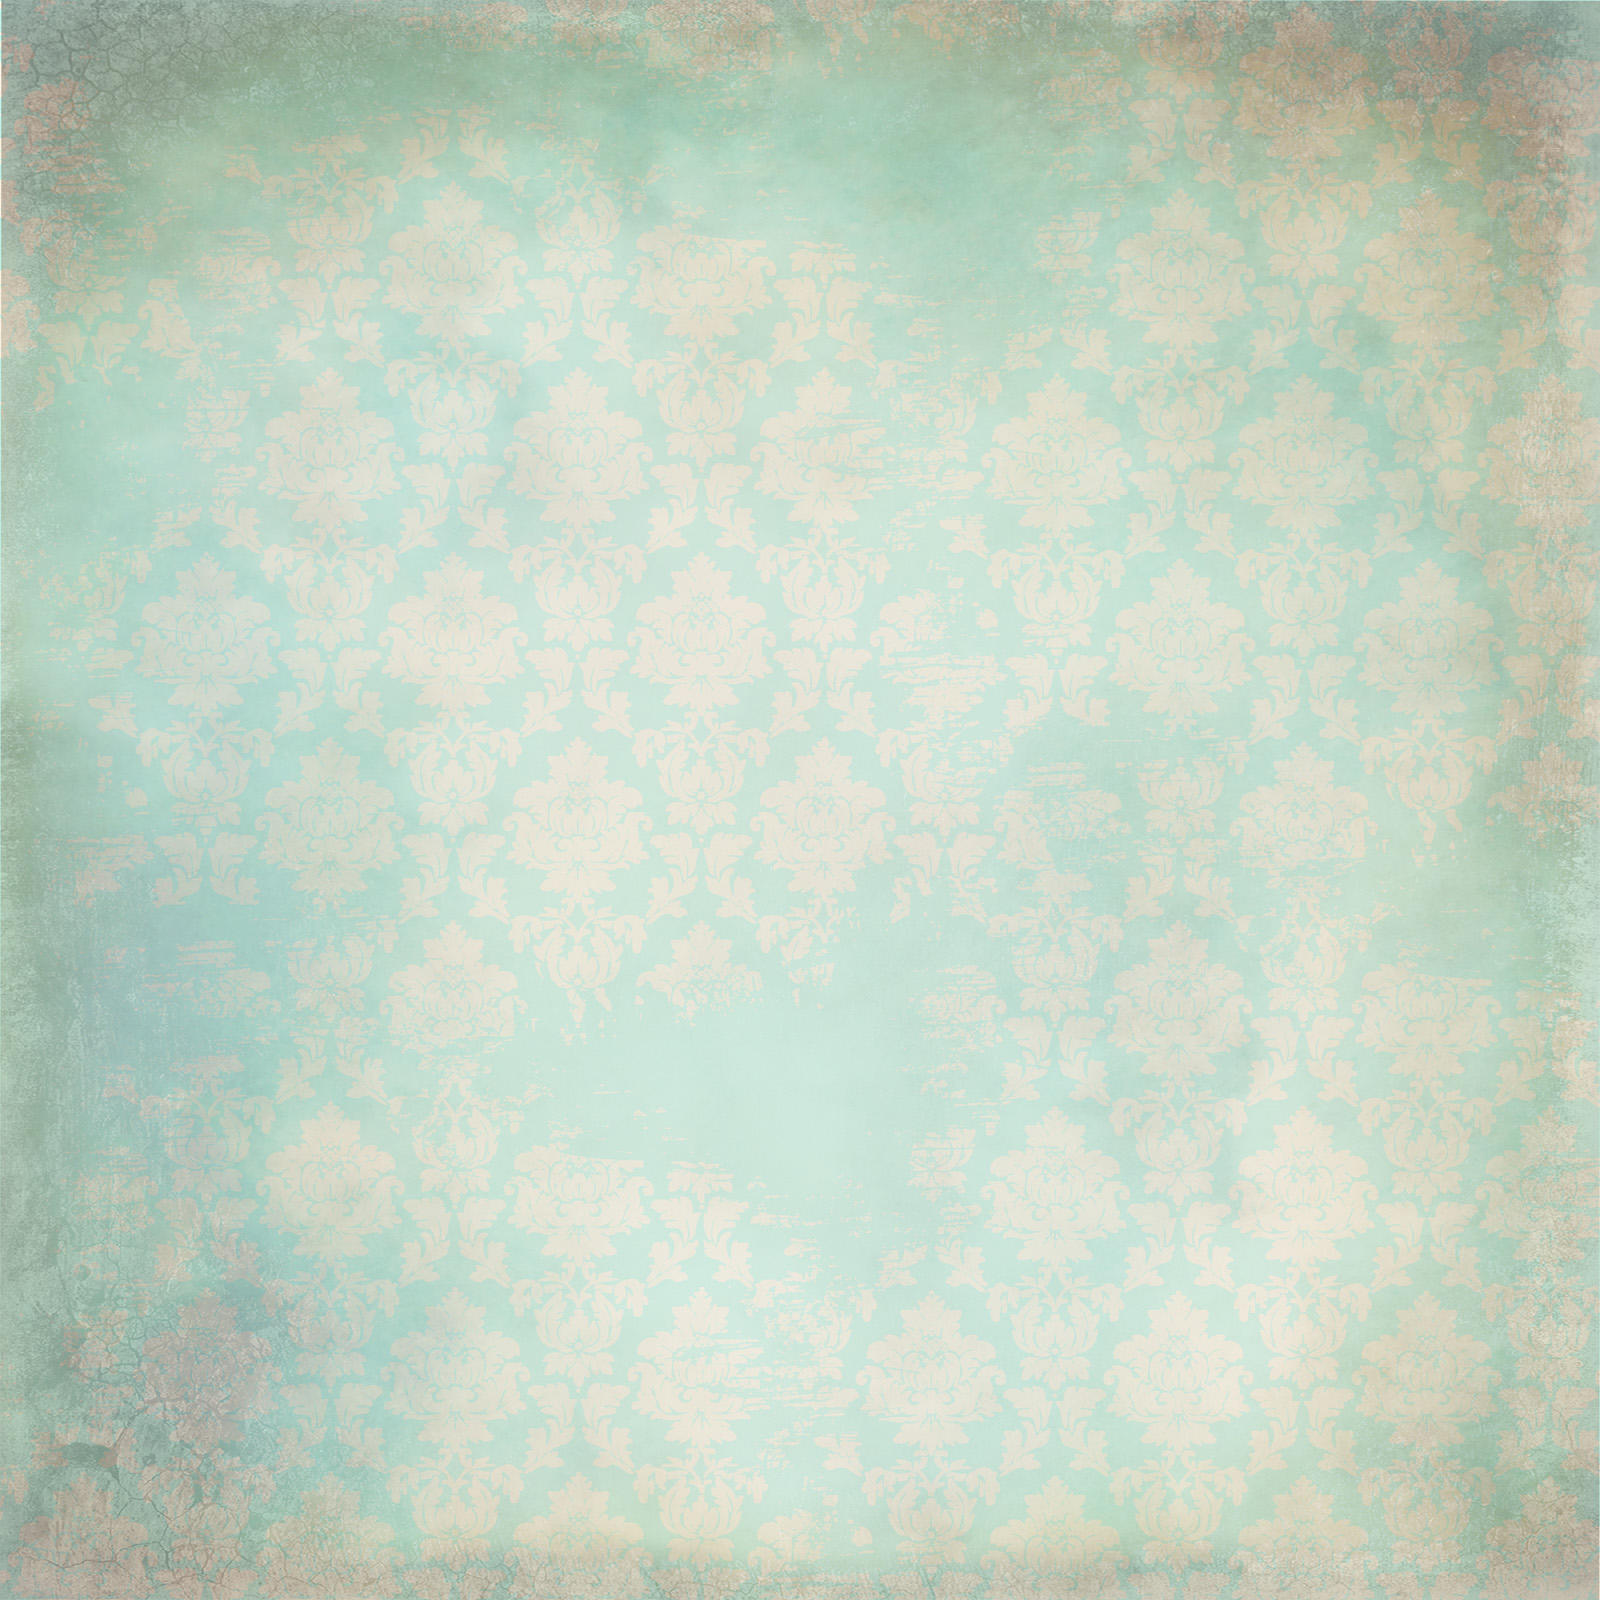 Retro styles patterns background 51721